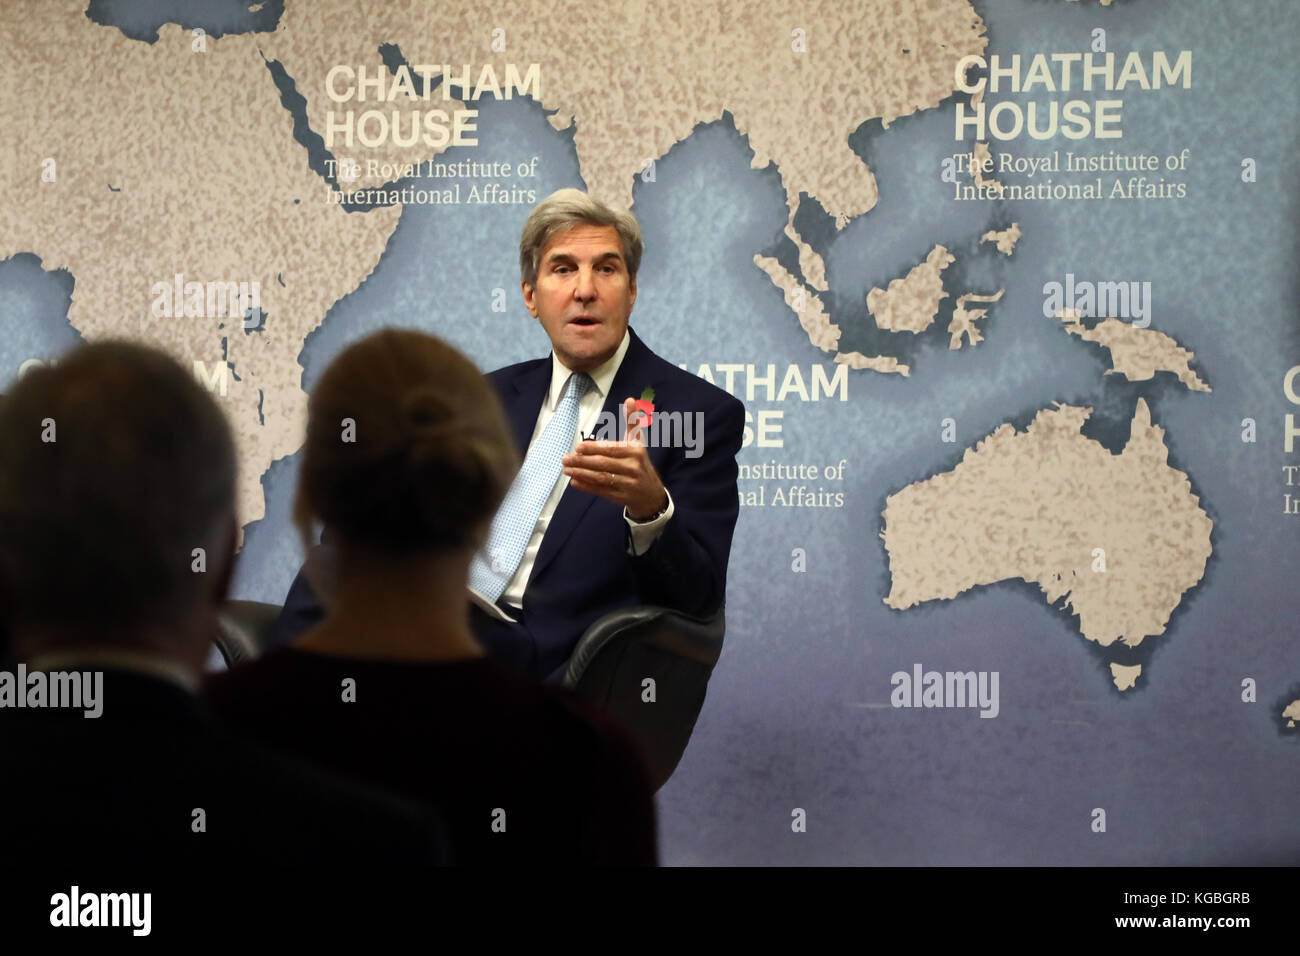 London, UK. 6th November, 2017. John Kerry, former US secretary of state, speaking about the Iranian nuclear deal Stock Photo